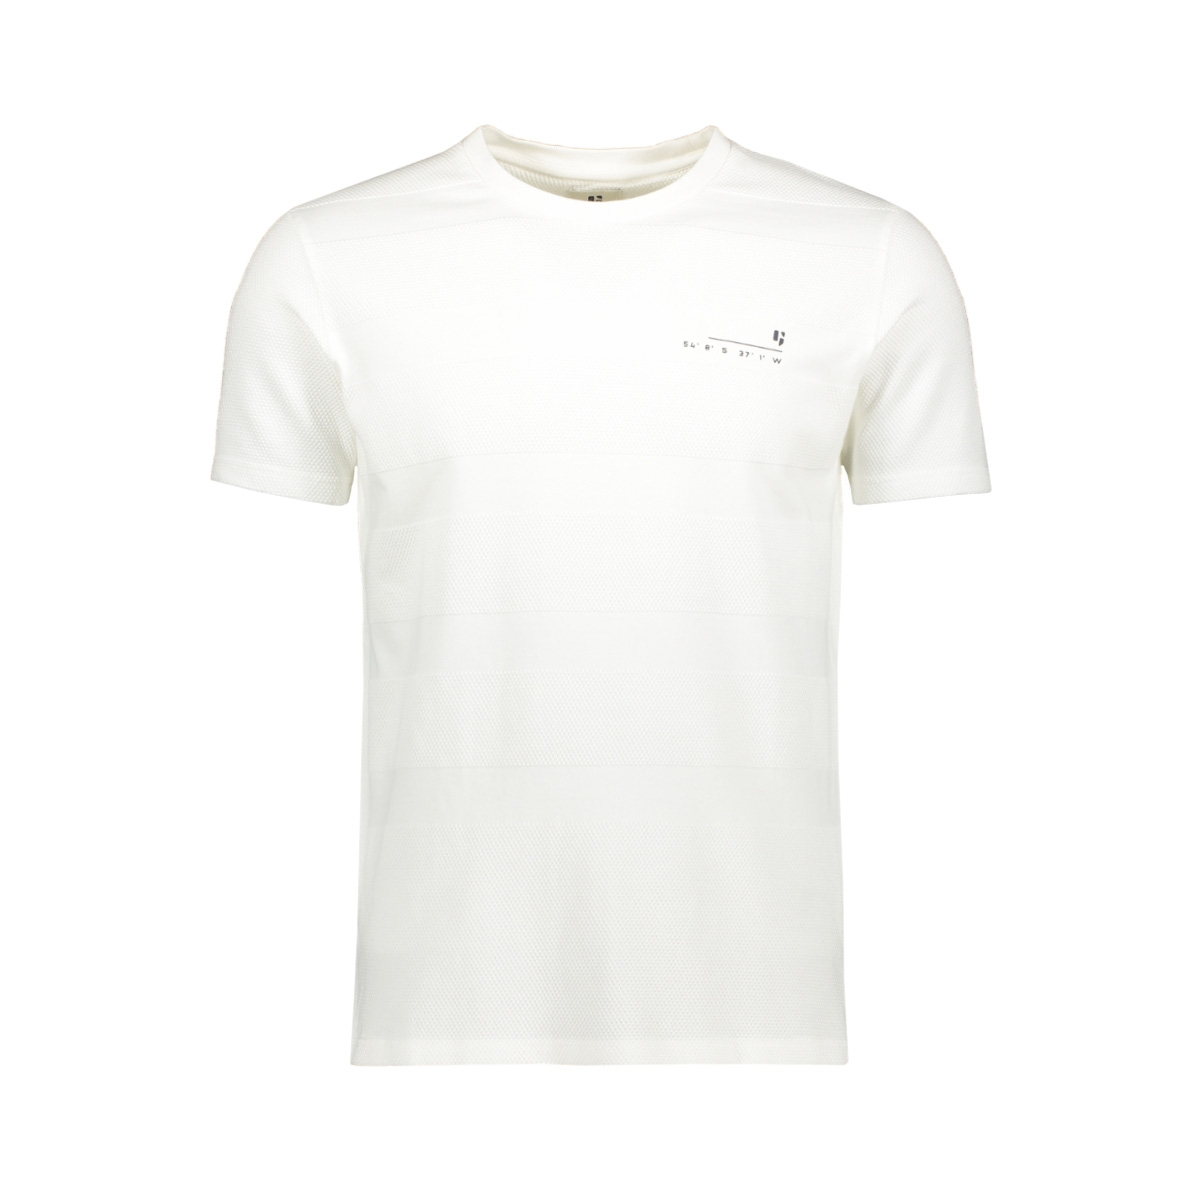 t shirt met relief g91011 garcia t-shirt 53 off white